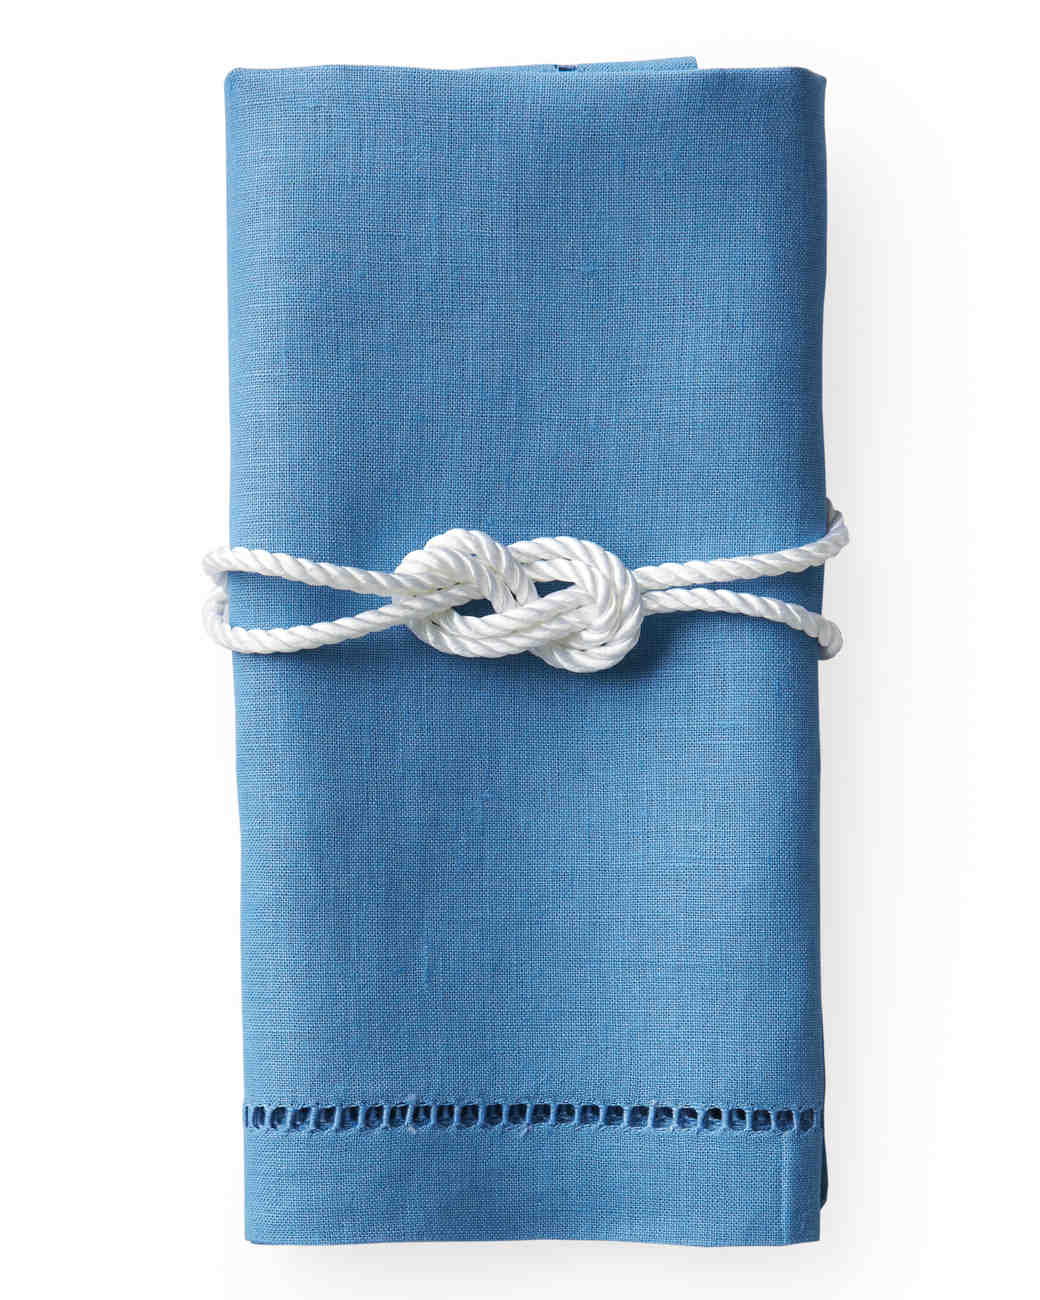 Blue Napkin with Rope Napkin Ring